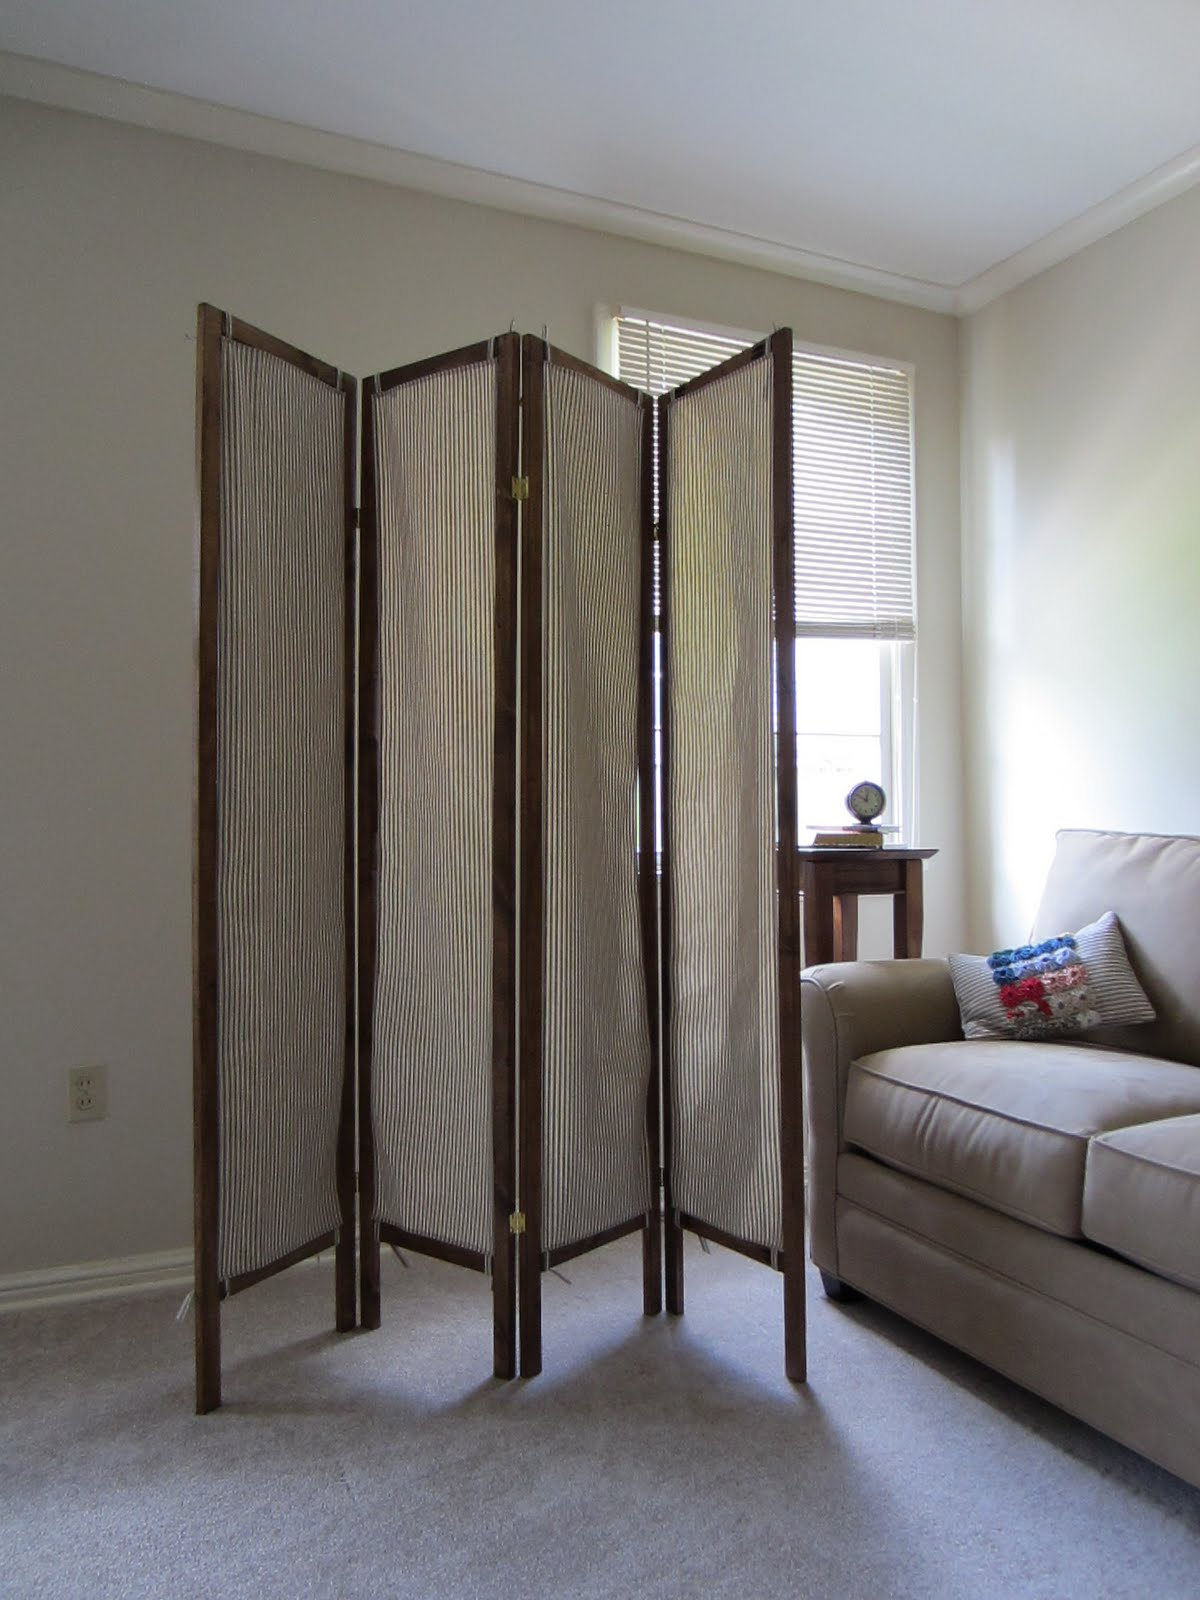 How to Build a Folding Screen recommend